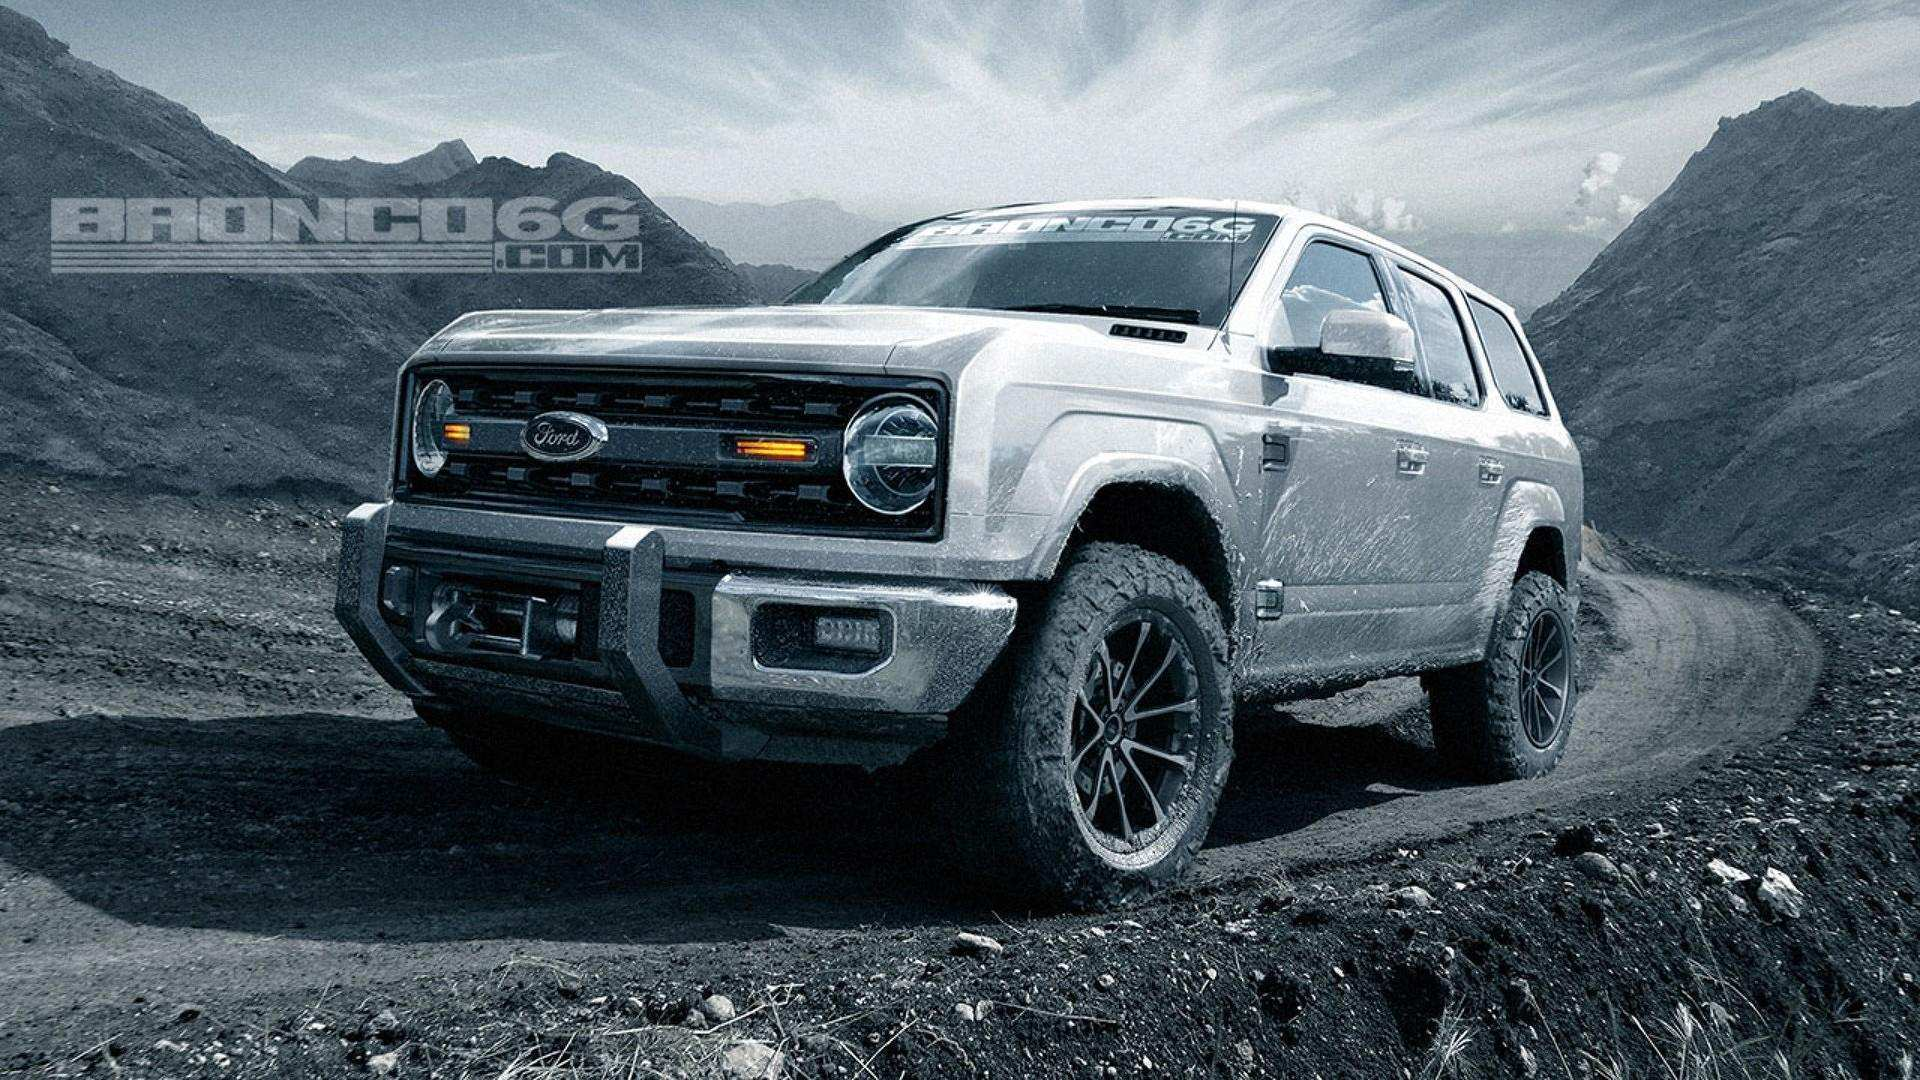 43 New 2020 Ford Bronco 4 Door Price Photos for 2020 Ford Bronco 4 Door Price